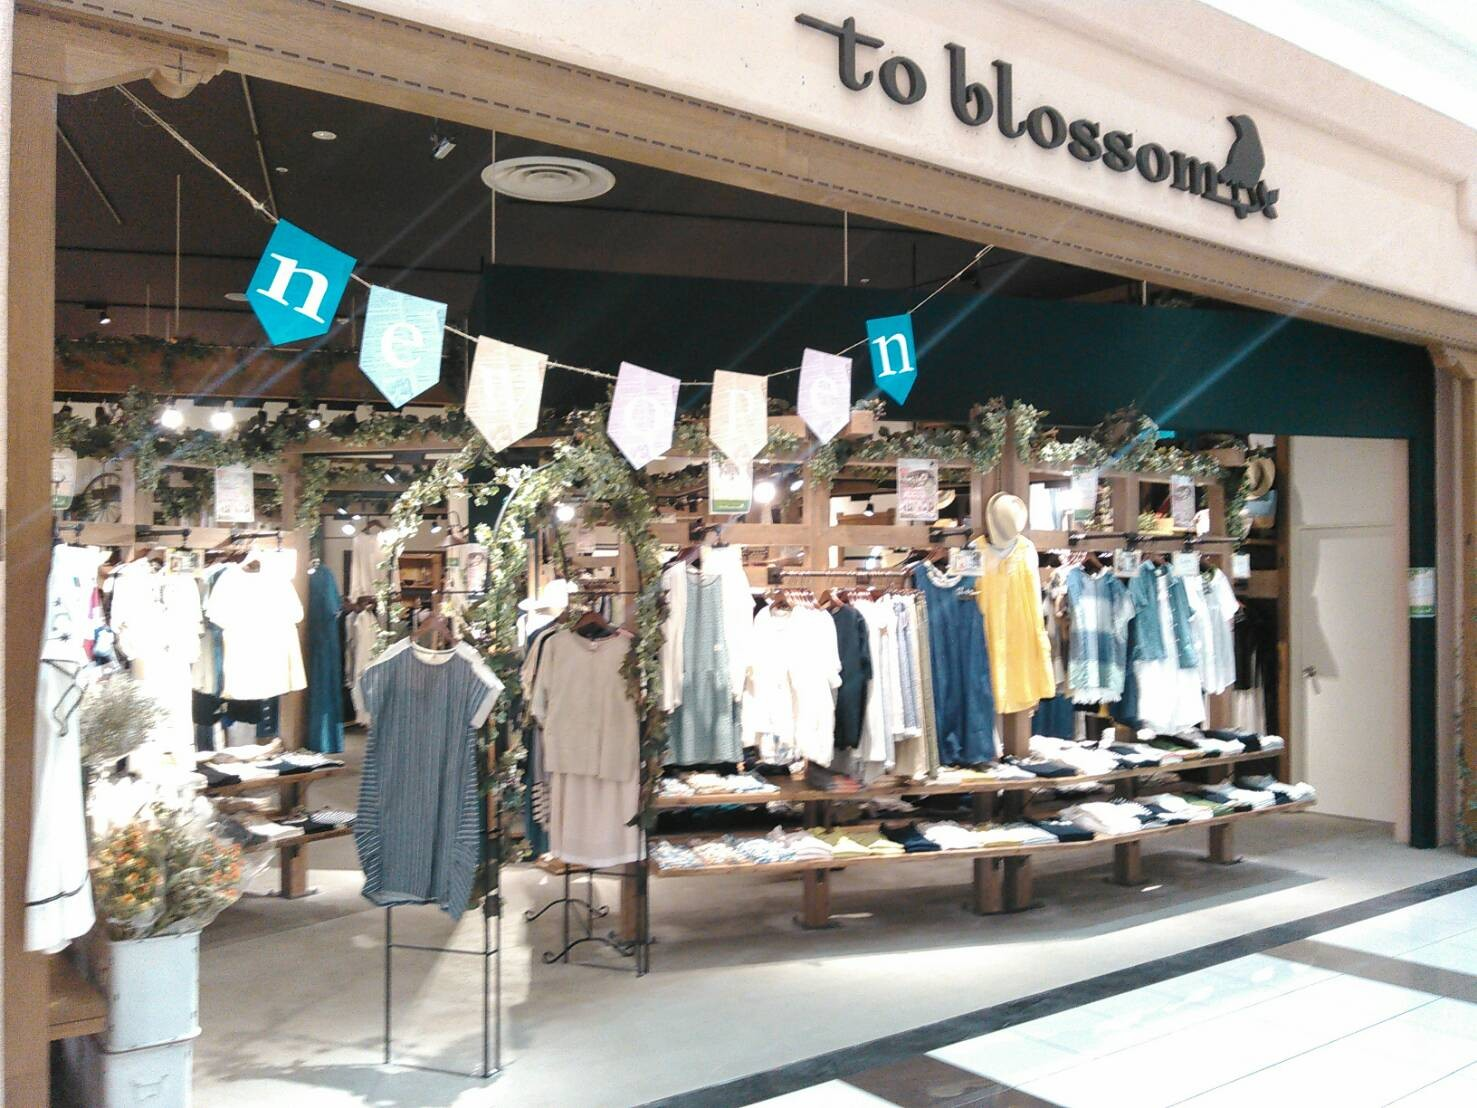 to blossom 八千代緑が丘店 のアルバイト情報